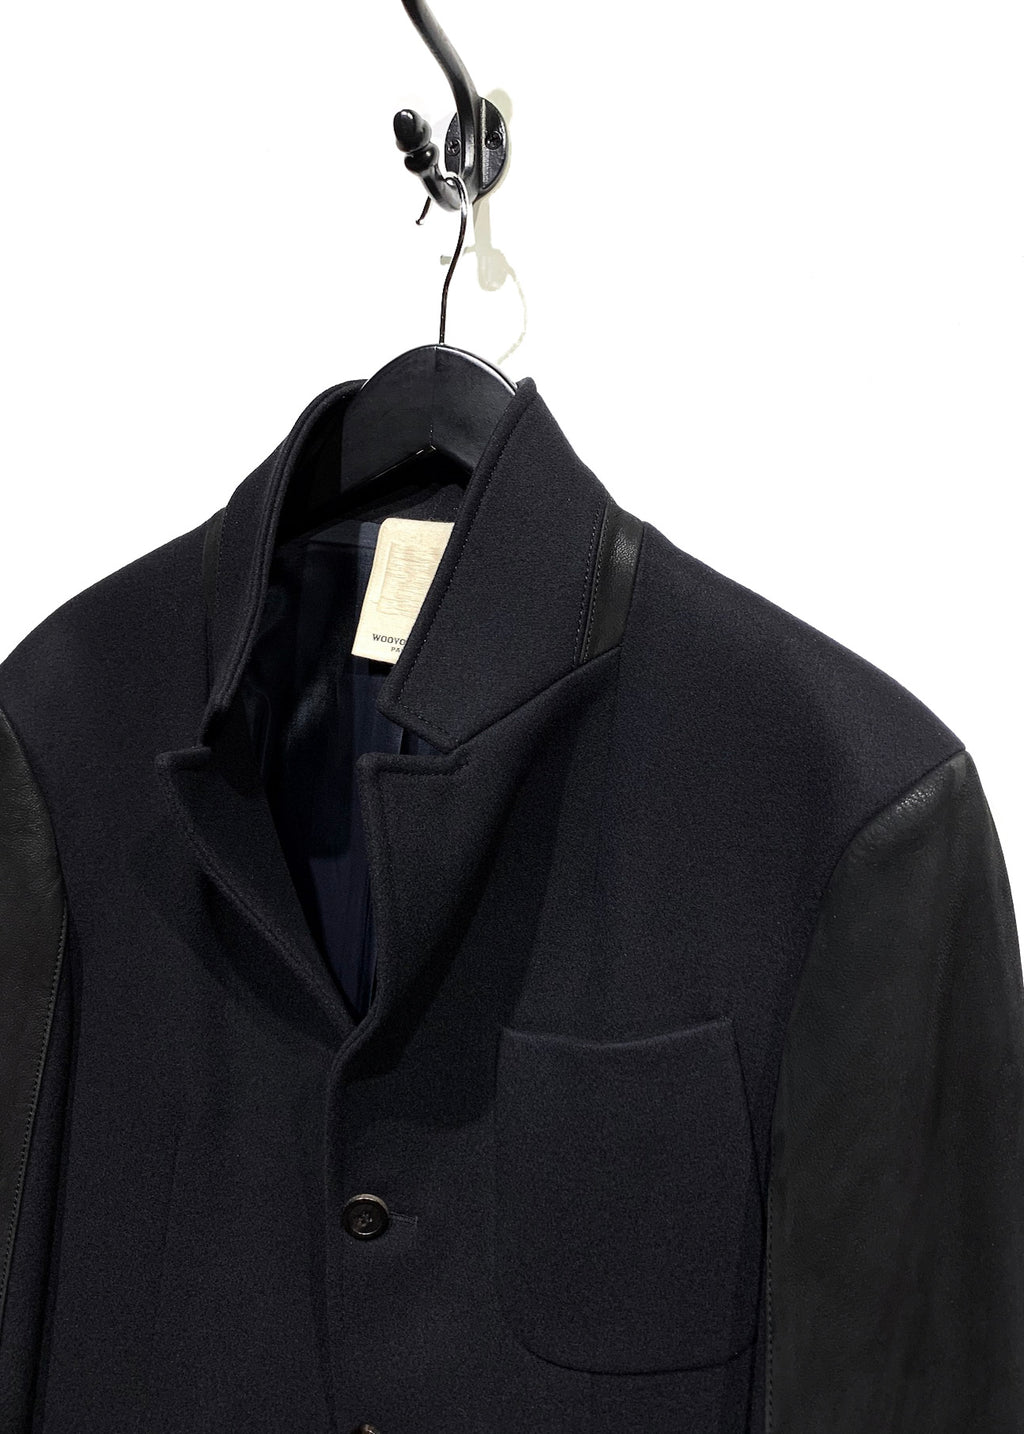 Wooyoungmi Navy Wool Blazer Jacket with Black Leather Sleeves